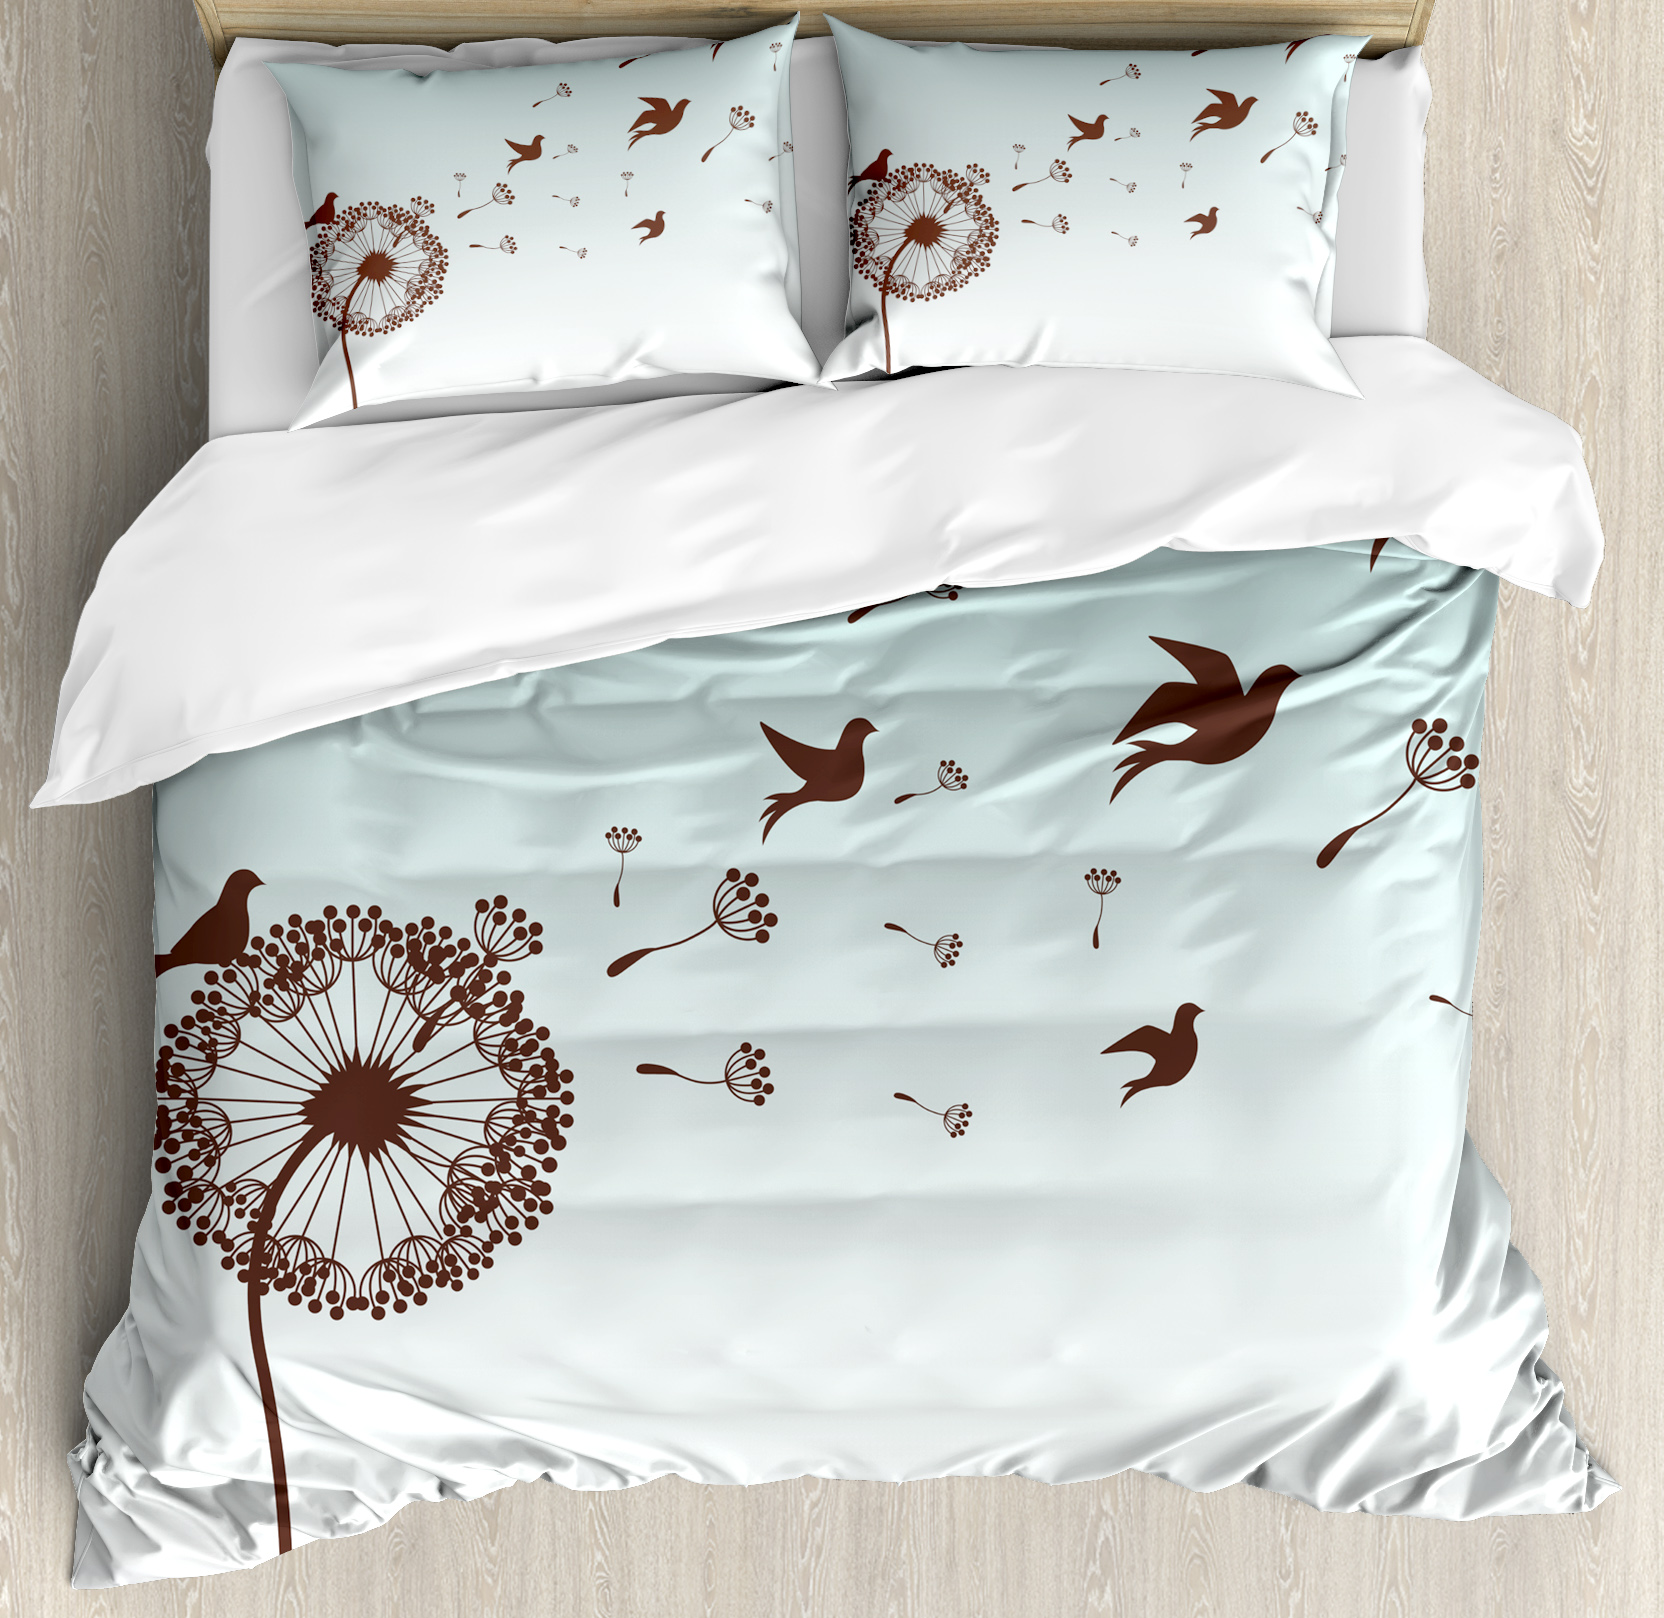 Art Decor King Size Duvet Cover Set, Dandelion Flower Pet...